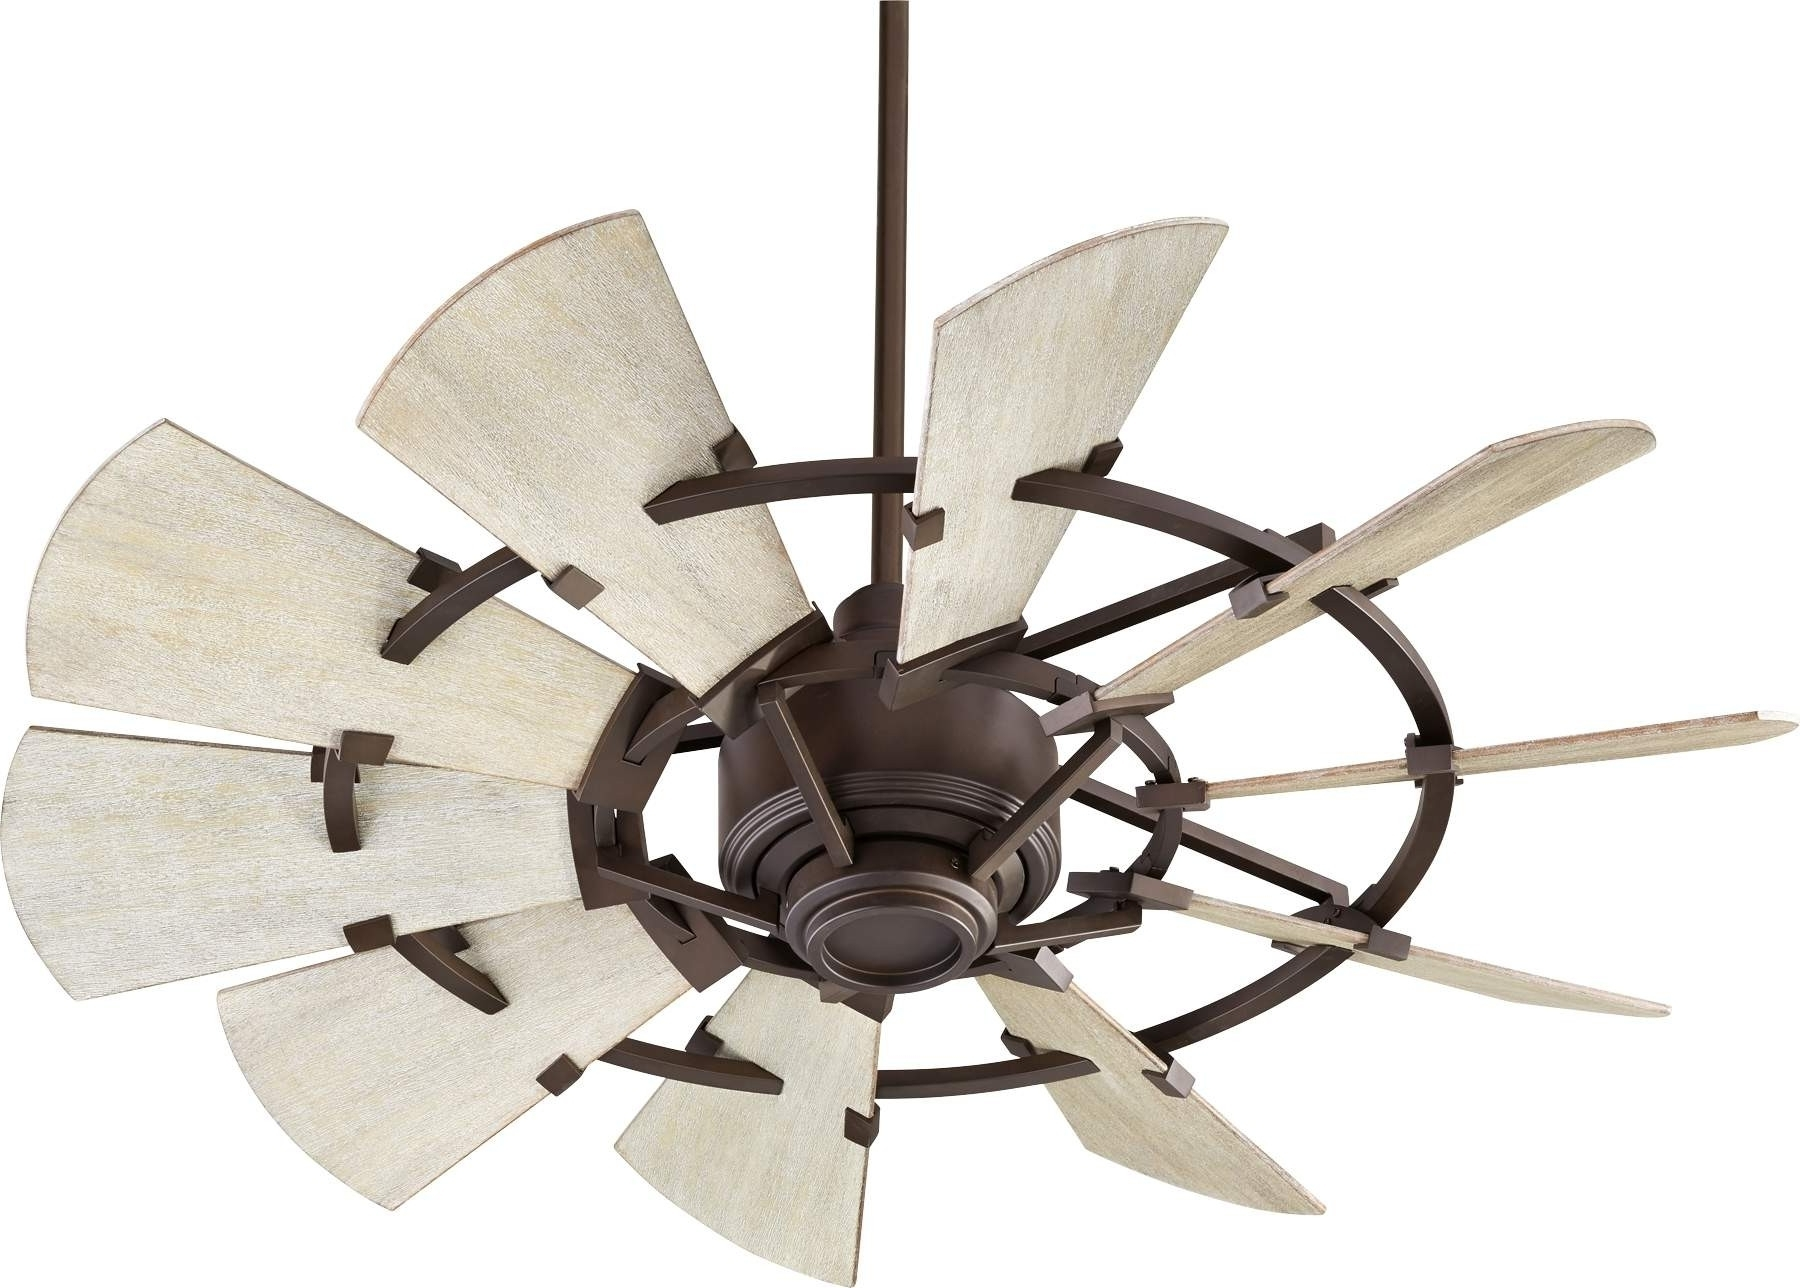 Unusual Ceiling Fans For Sale Windmill Ceiling Fan Photo Album Home Design Ideas